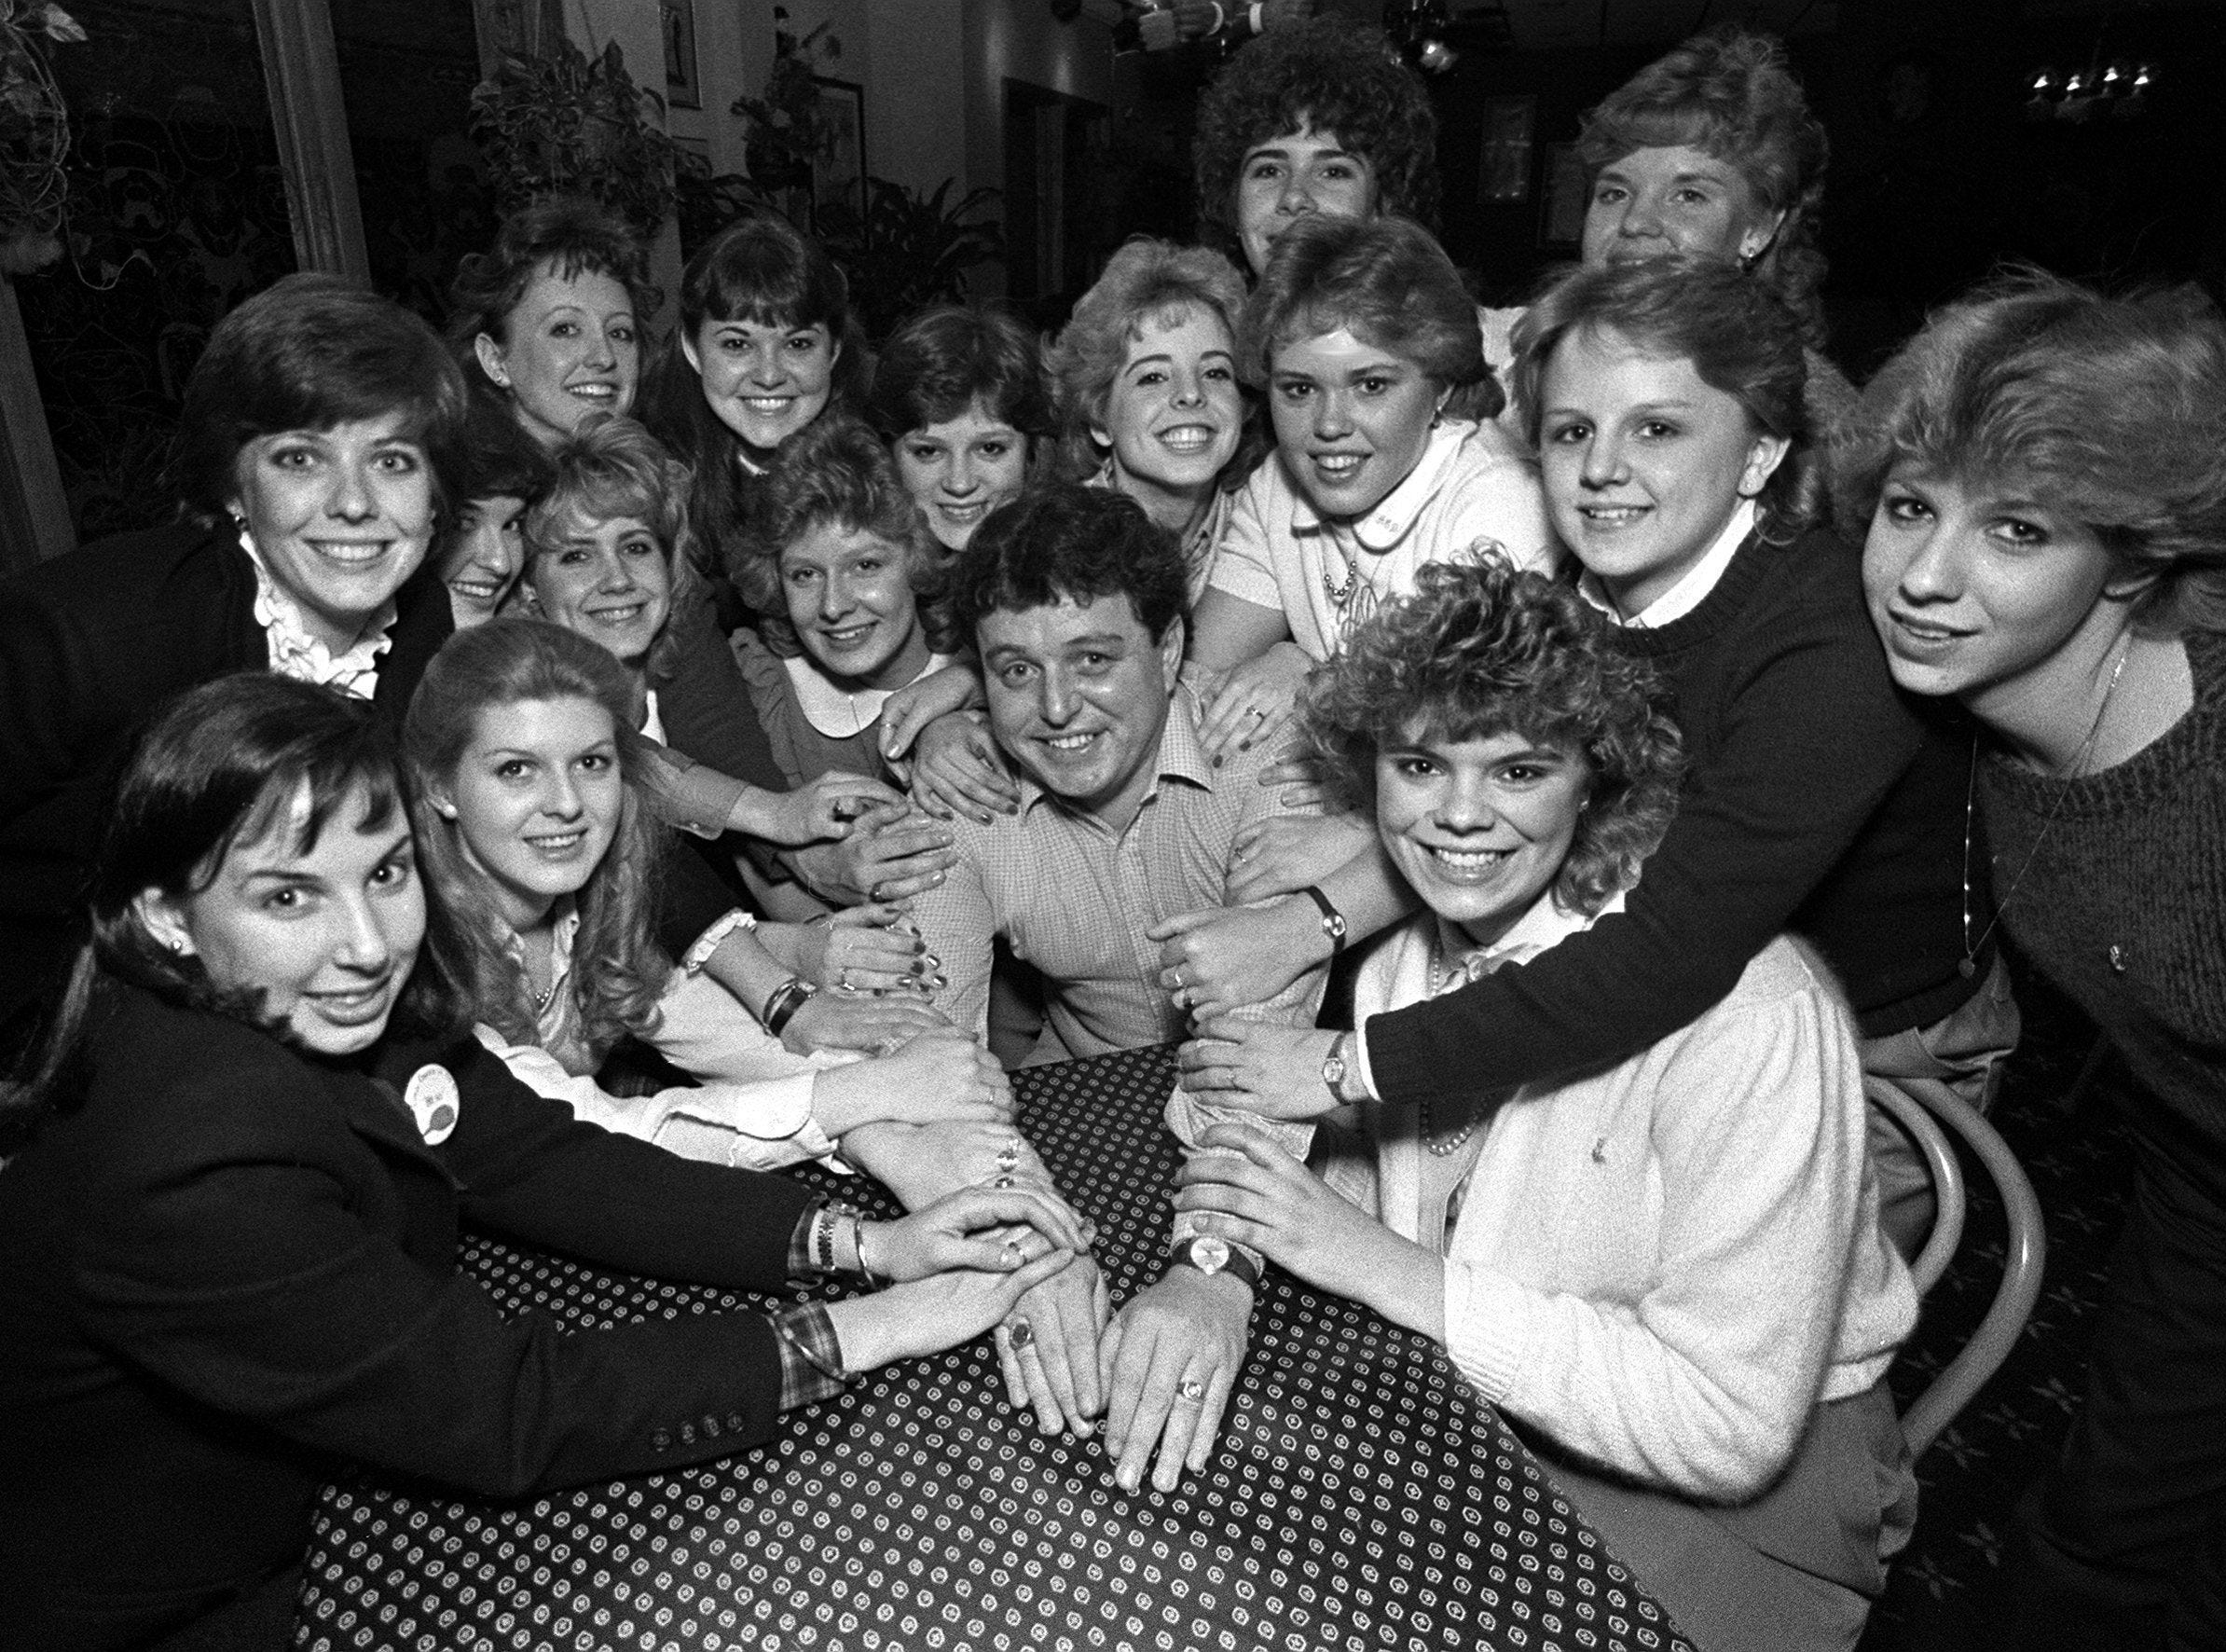 Jerry Mathers, who portrayed the clean-cut youngster Theodore ?Beaver? Cleaver in 234 episodes of ?Leave It to Beaver? from 1957 to 1963, is surrounded by members of the Delta Gamma Sorority from Memphis State University at People?s Restaurant in Park Place Plaza in February 1984. Mathers was in town to speak at the University Center, and Delta Gamma was one of the sponsors.